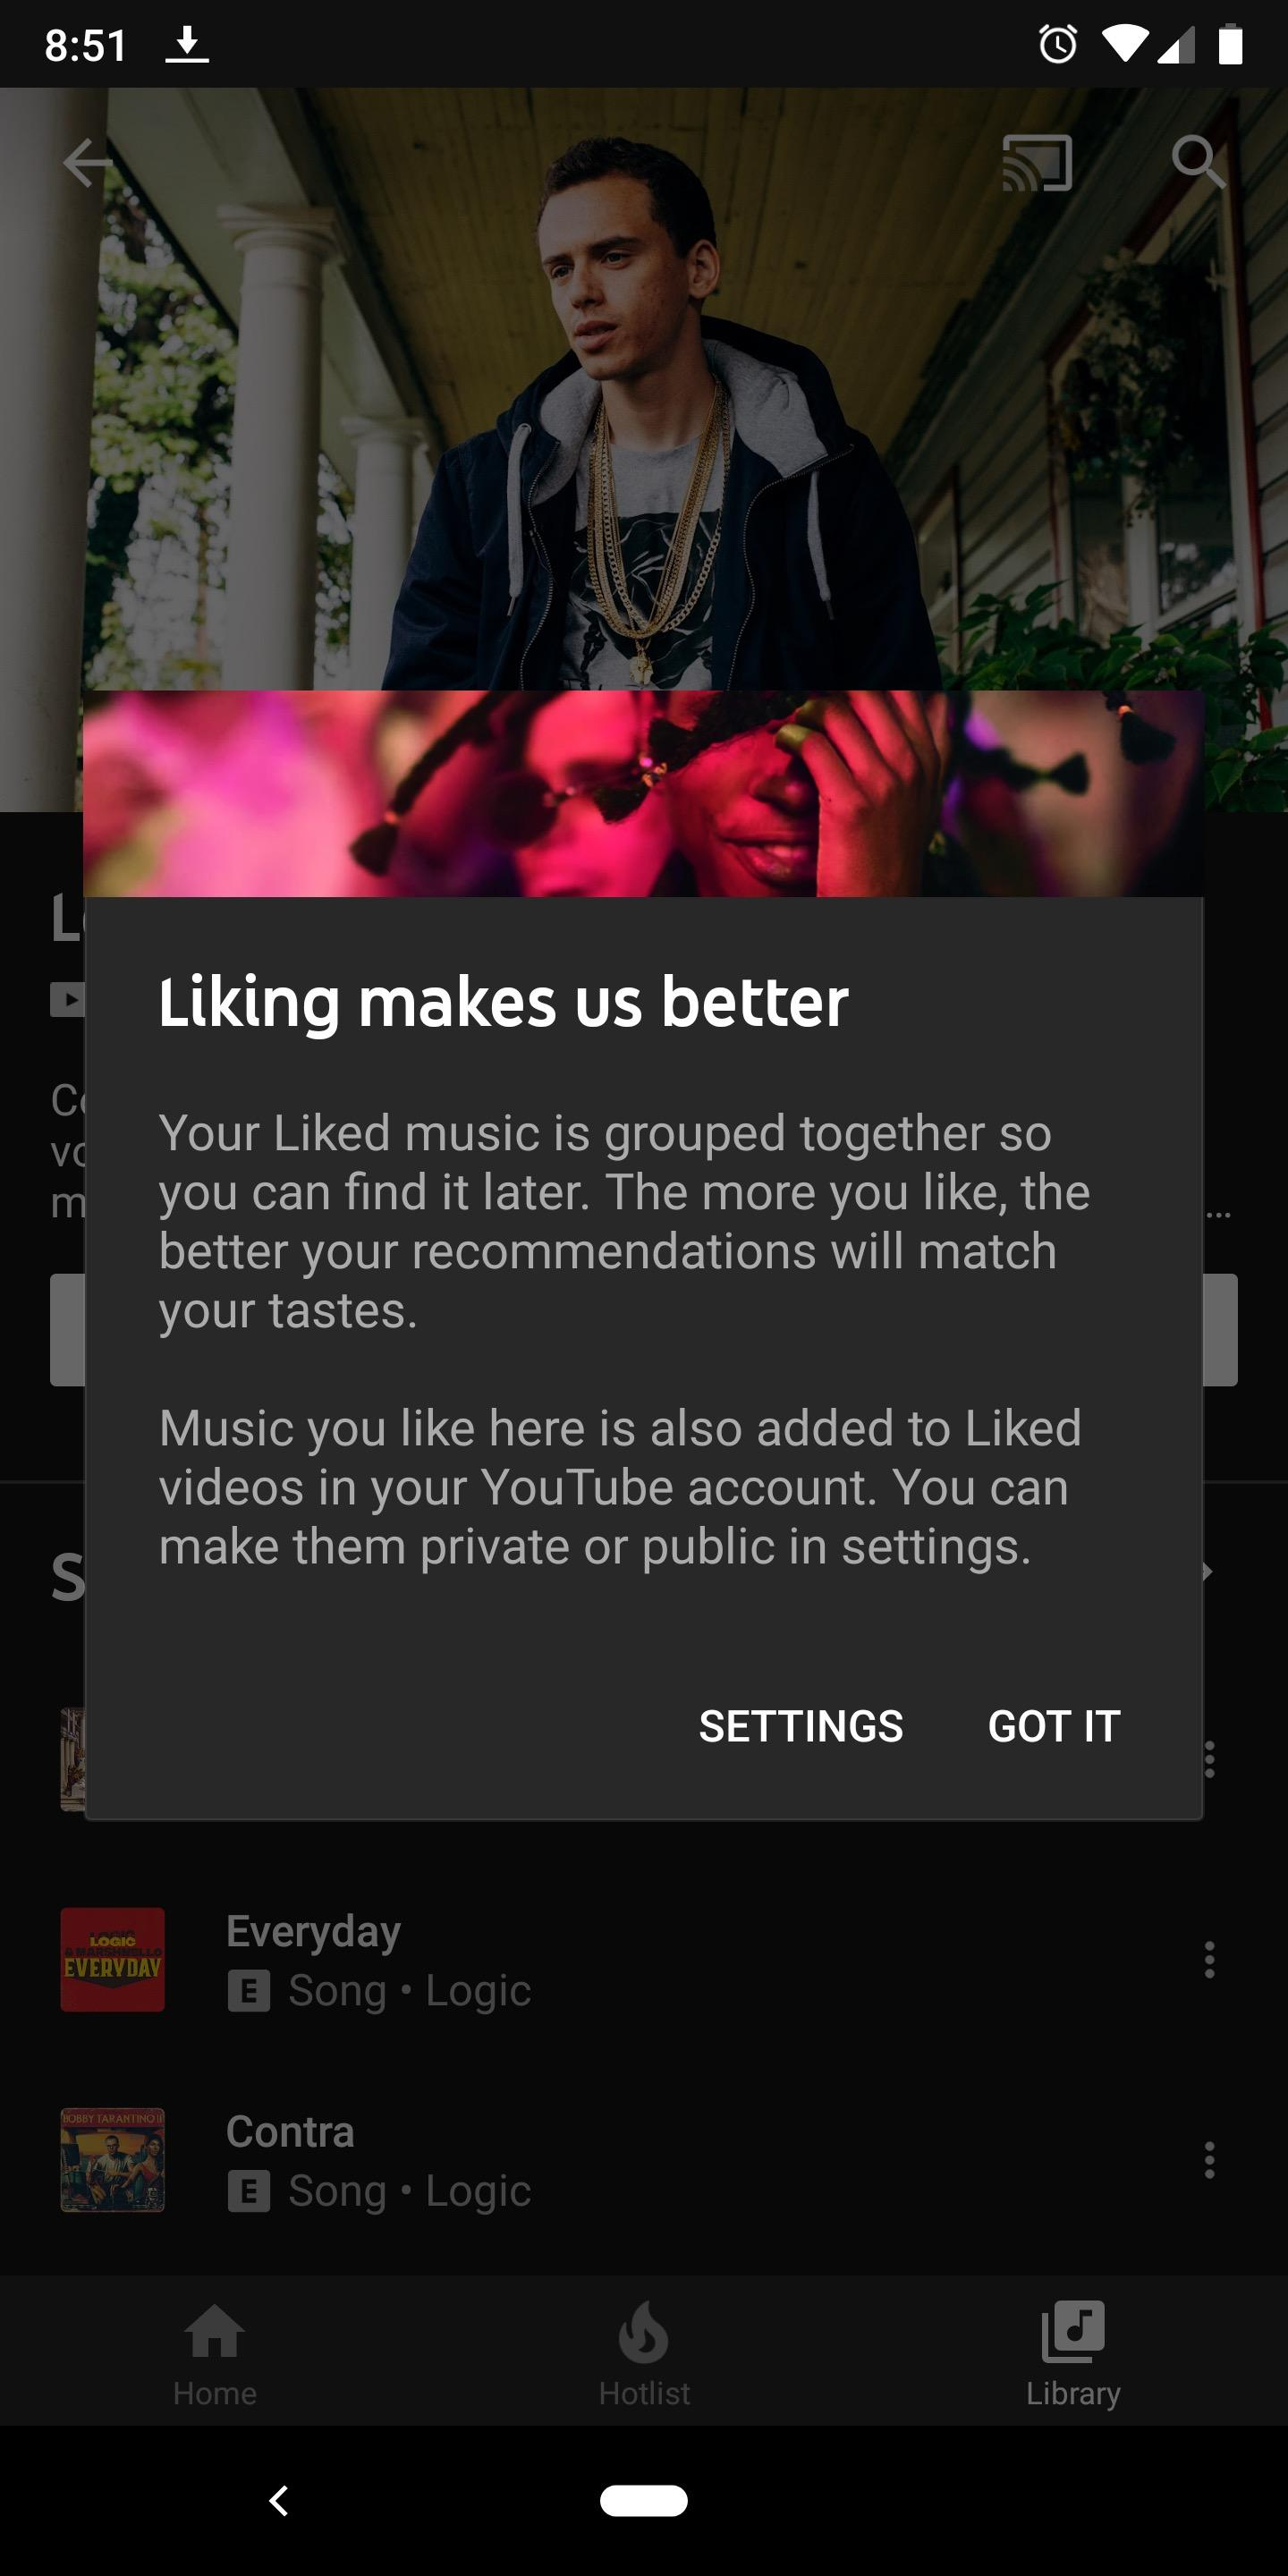 youtube-music-thumbs-up